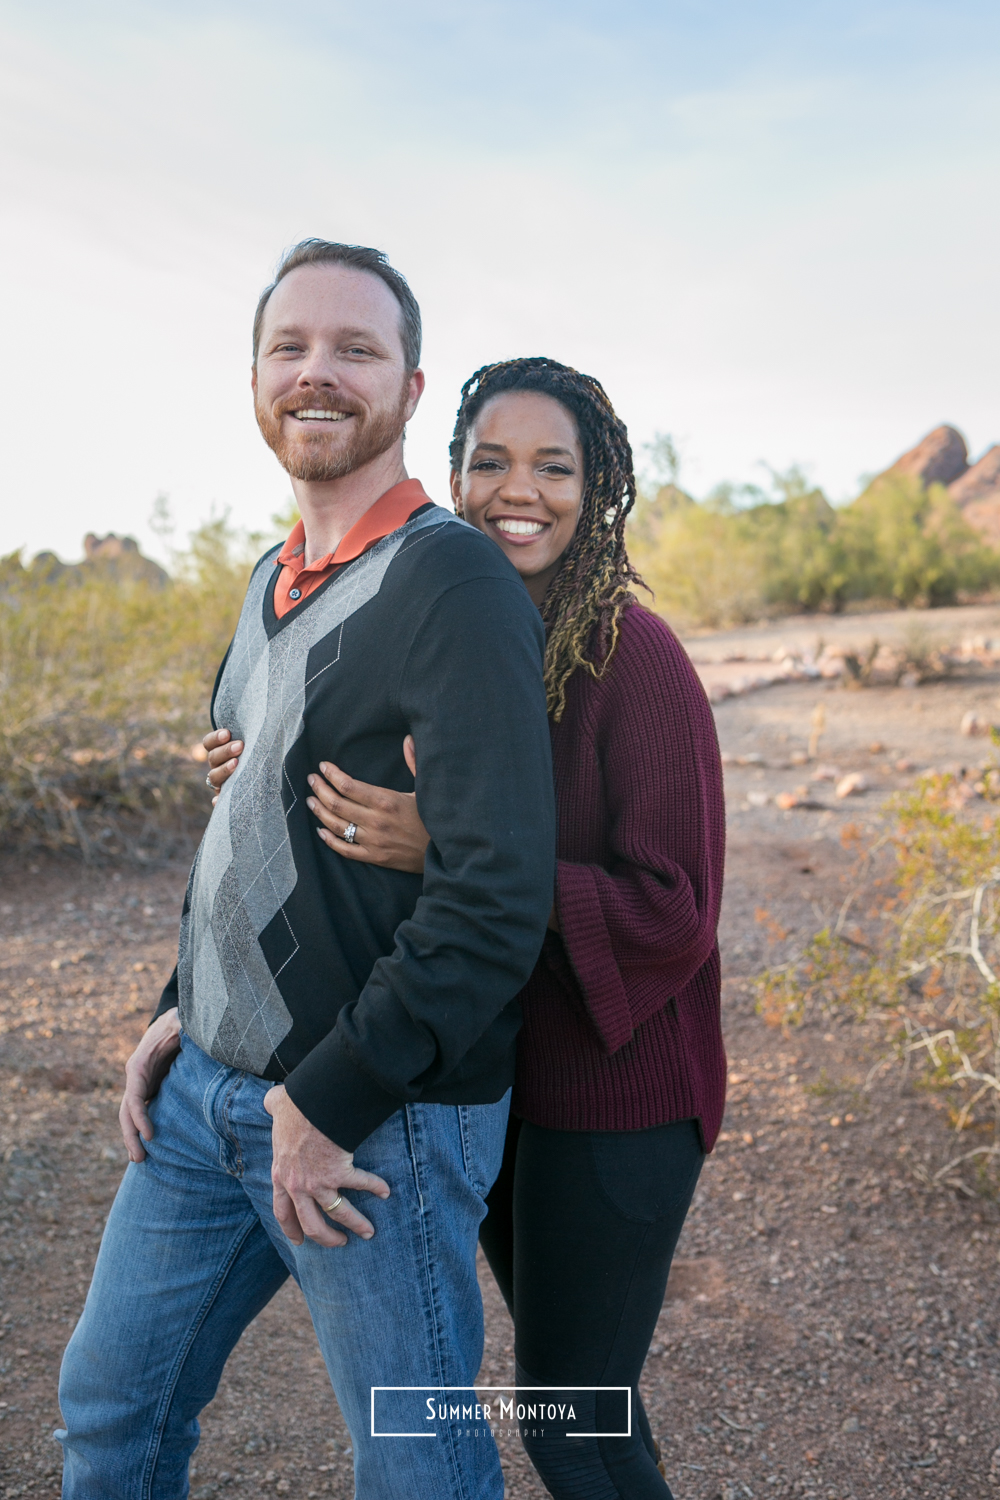 papago-park-couple-smiling-and-laughing